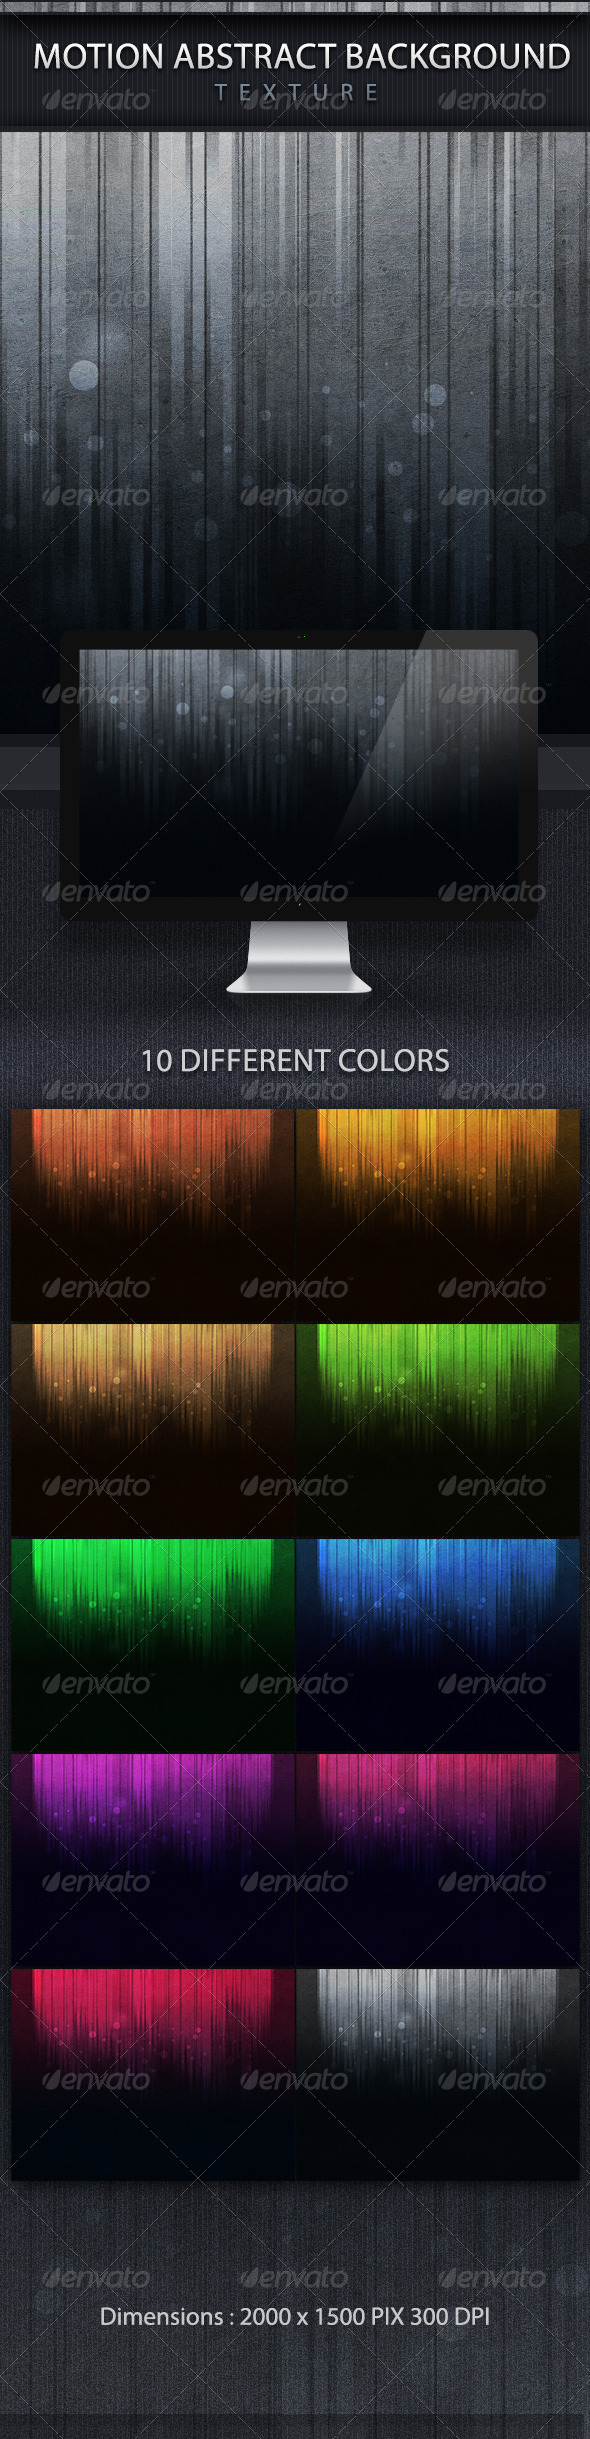 Motion Abstract Backgrounds Texture GraphicRiver Motion